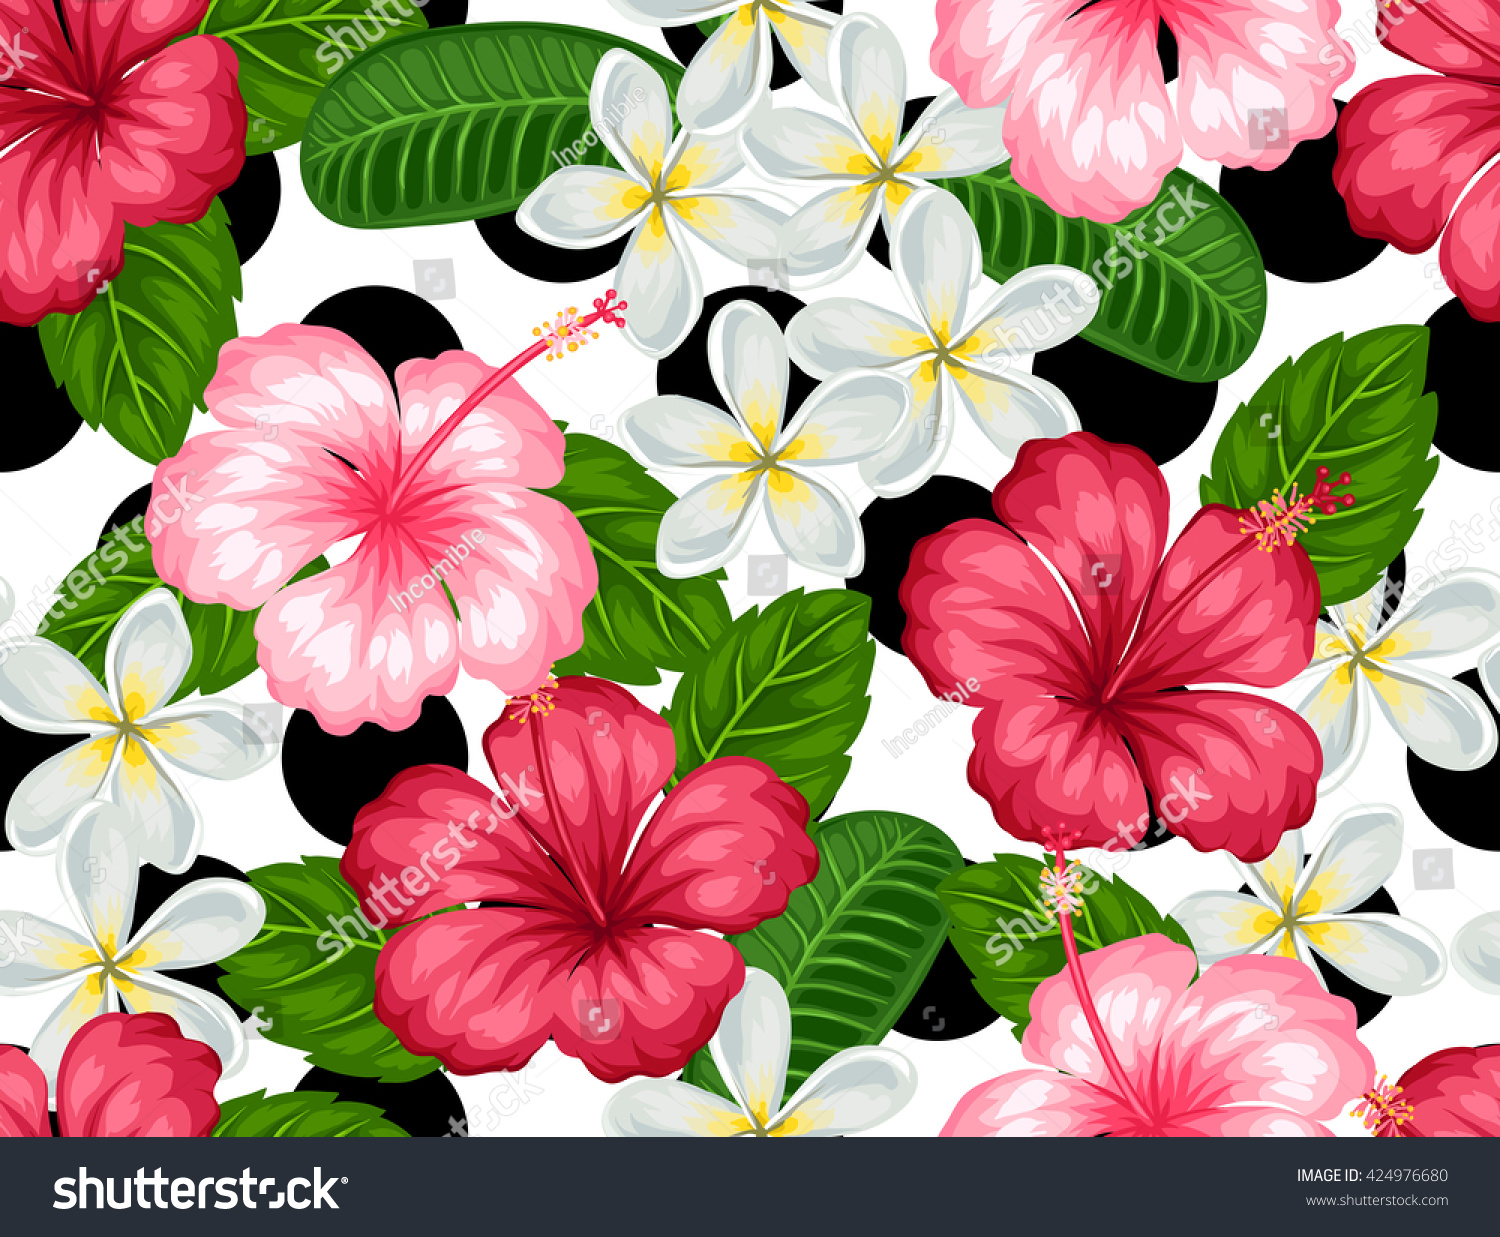 Seamless pattern tropical flowers hibiscus plumeria stock vector seamless pattern with tropical flowers hibiscus and plumeria background made without clipping mask easy izmirmasajfo